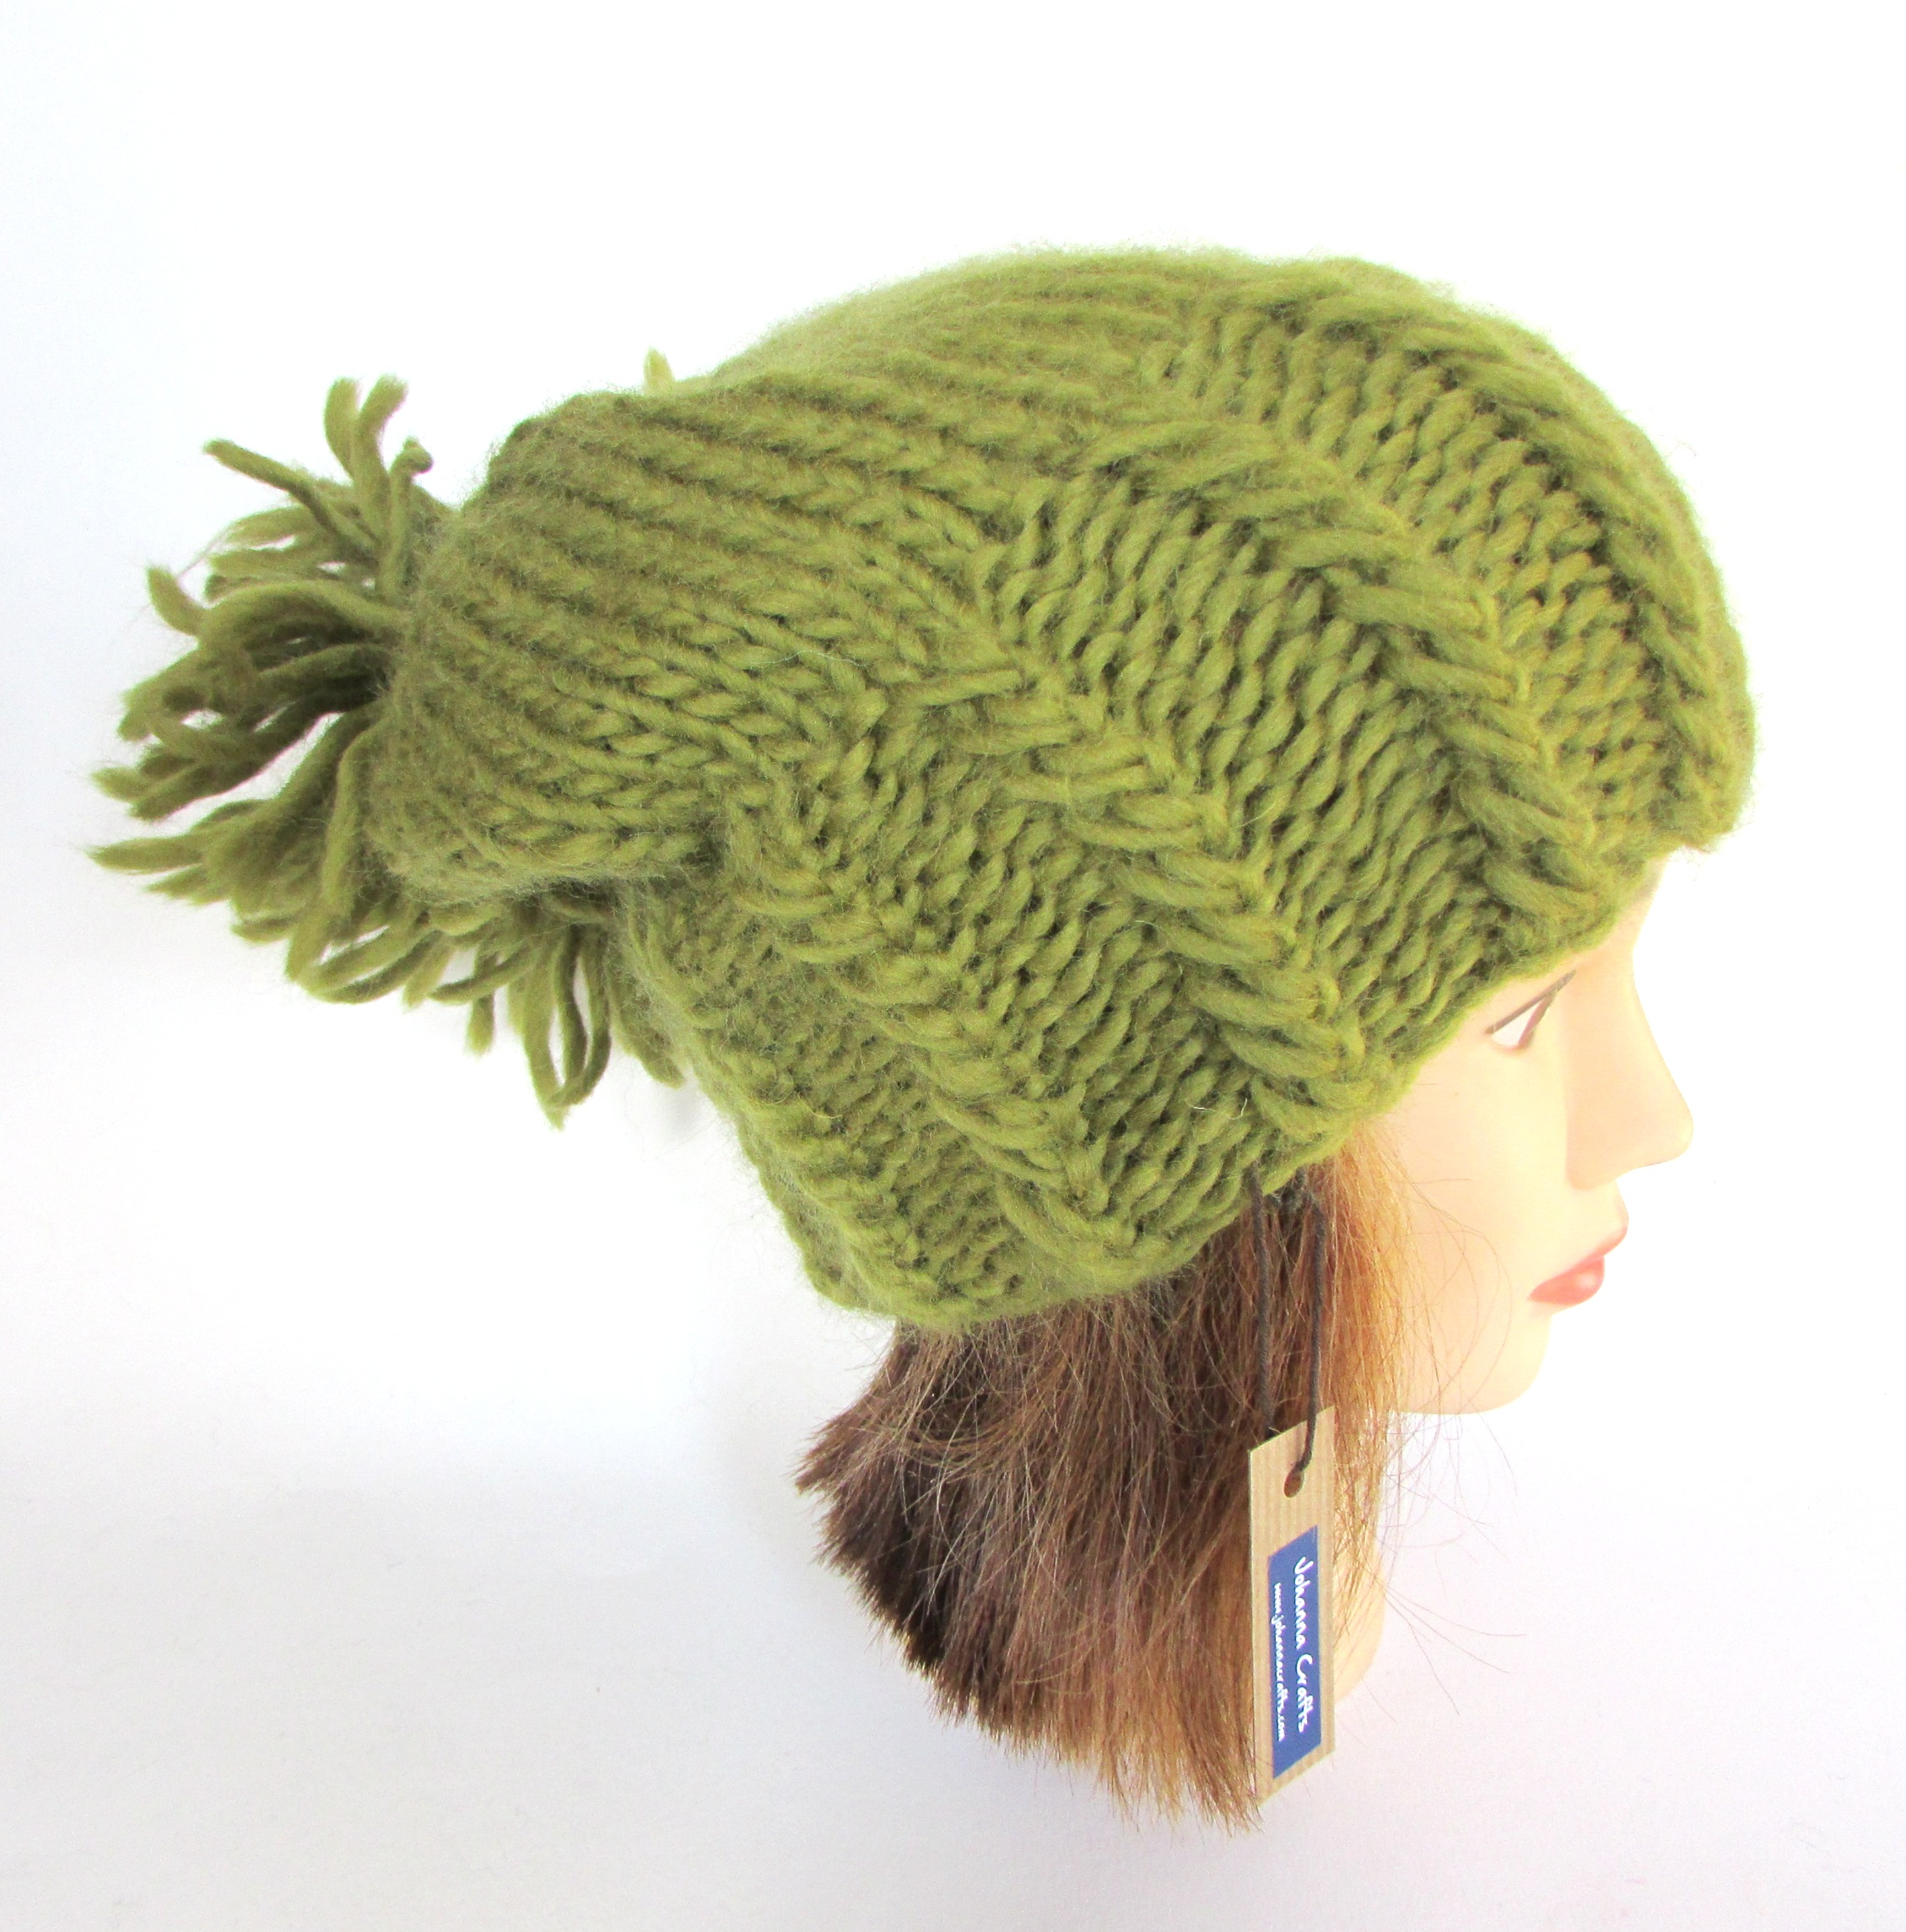 dfc4caadb06 Irish hand knit olive green hat with large pom pom - chunky knit fun ...